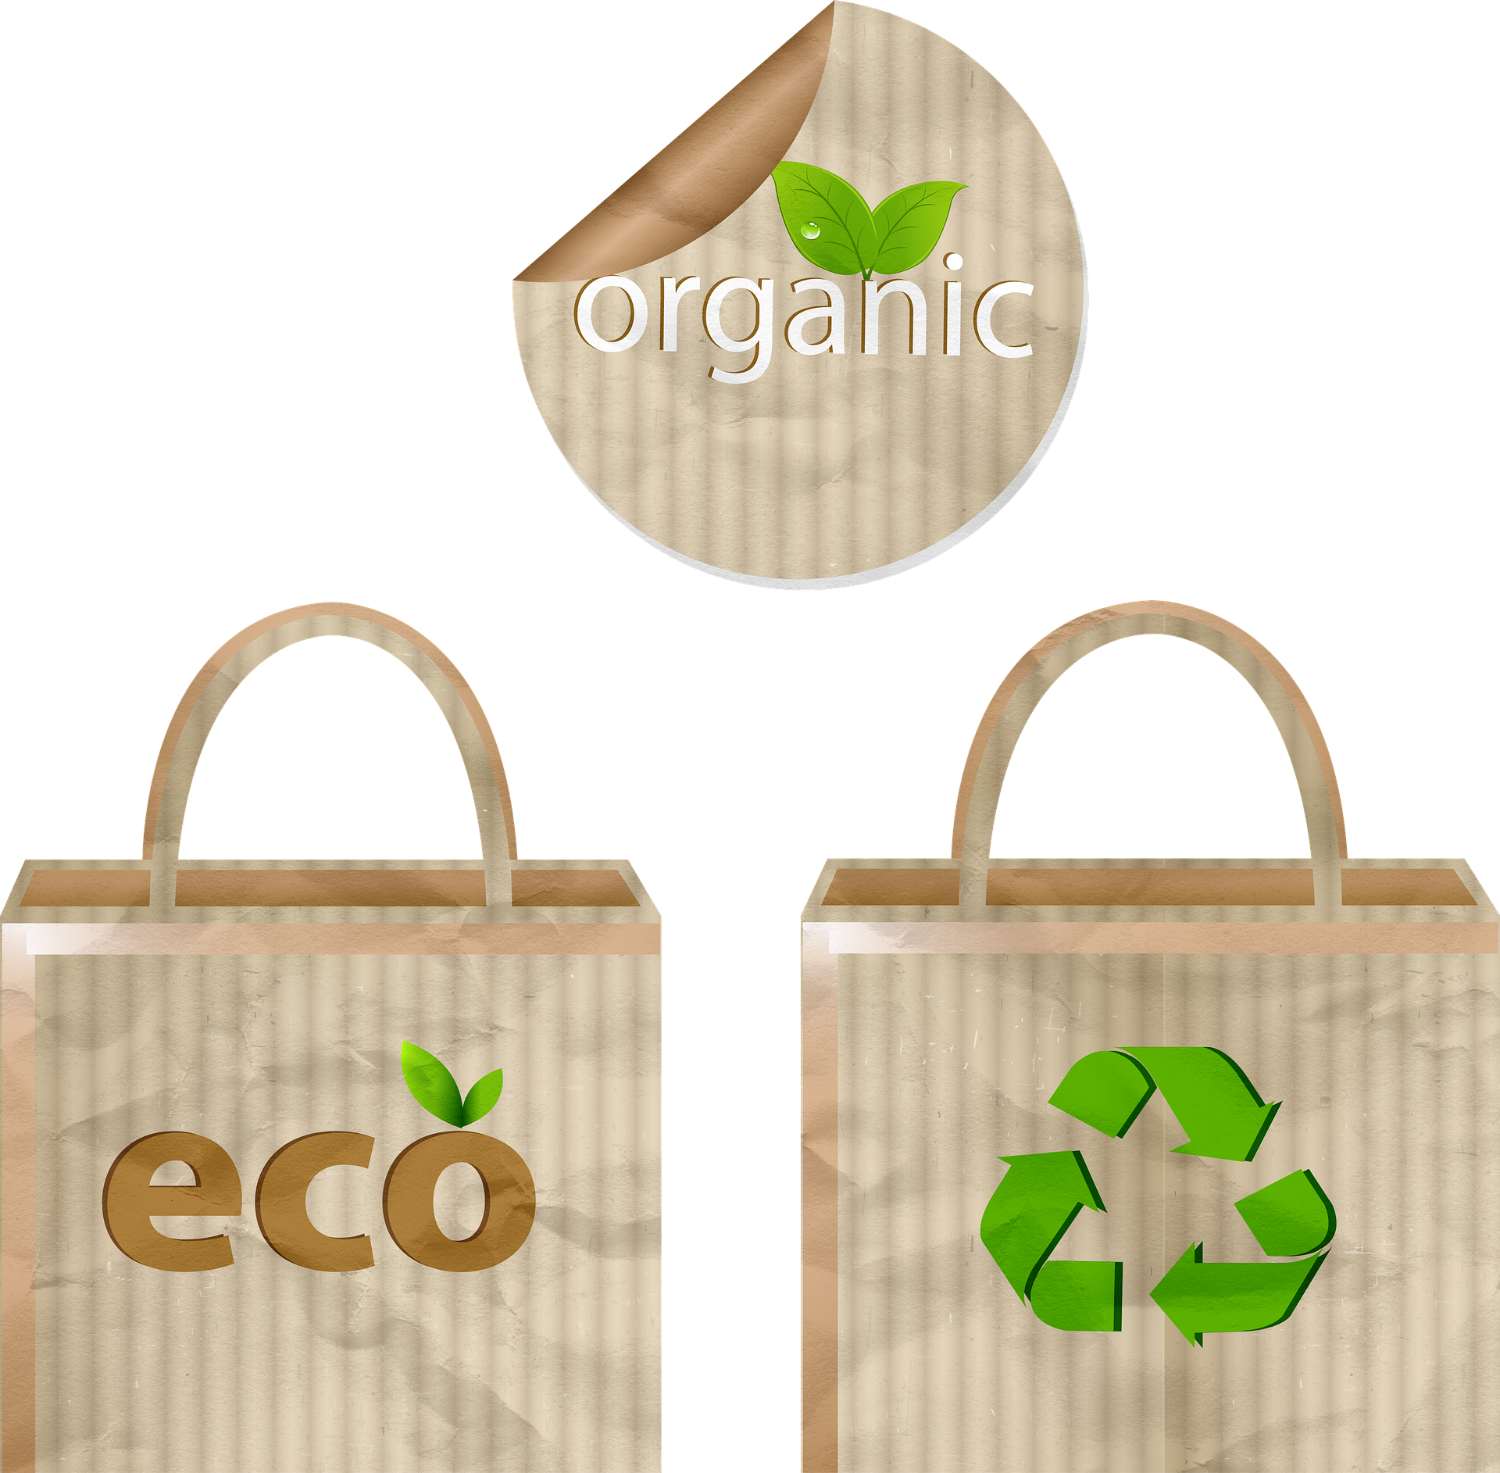 biodegradable compostable materials